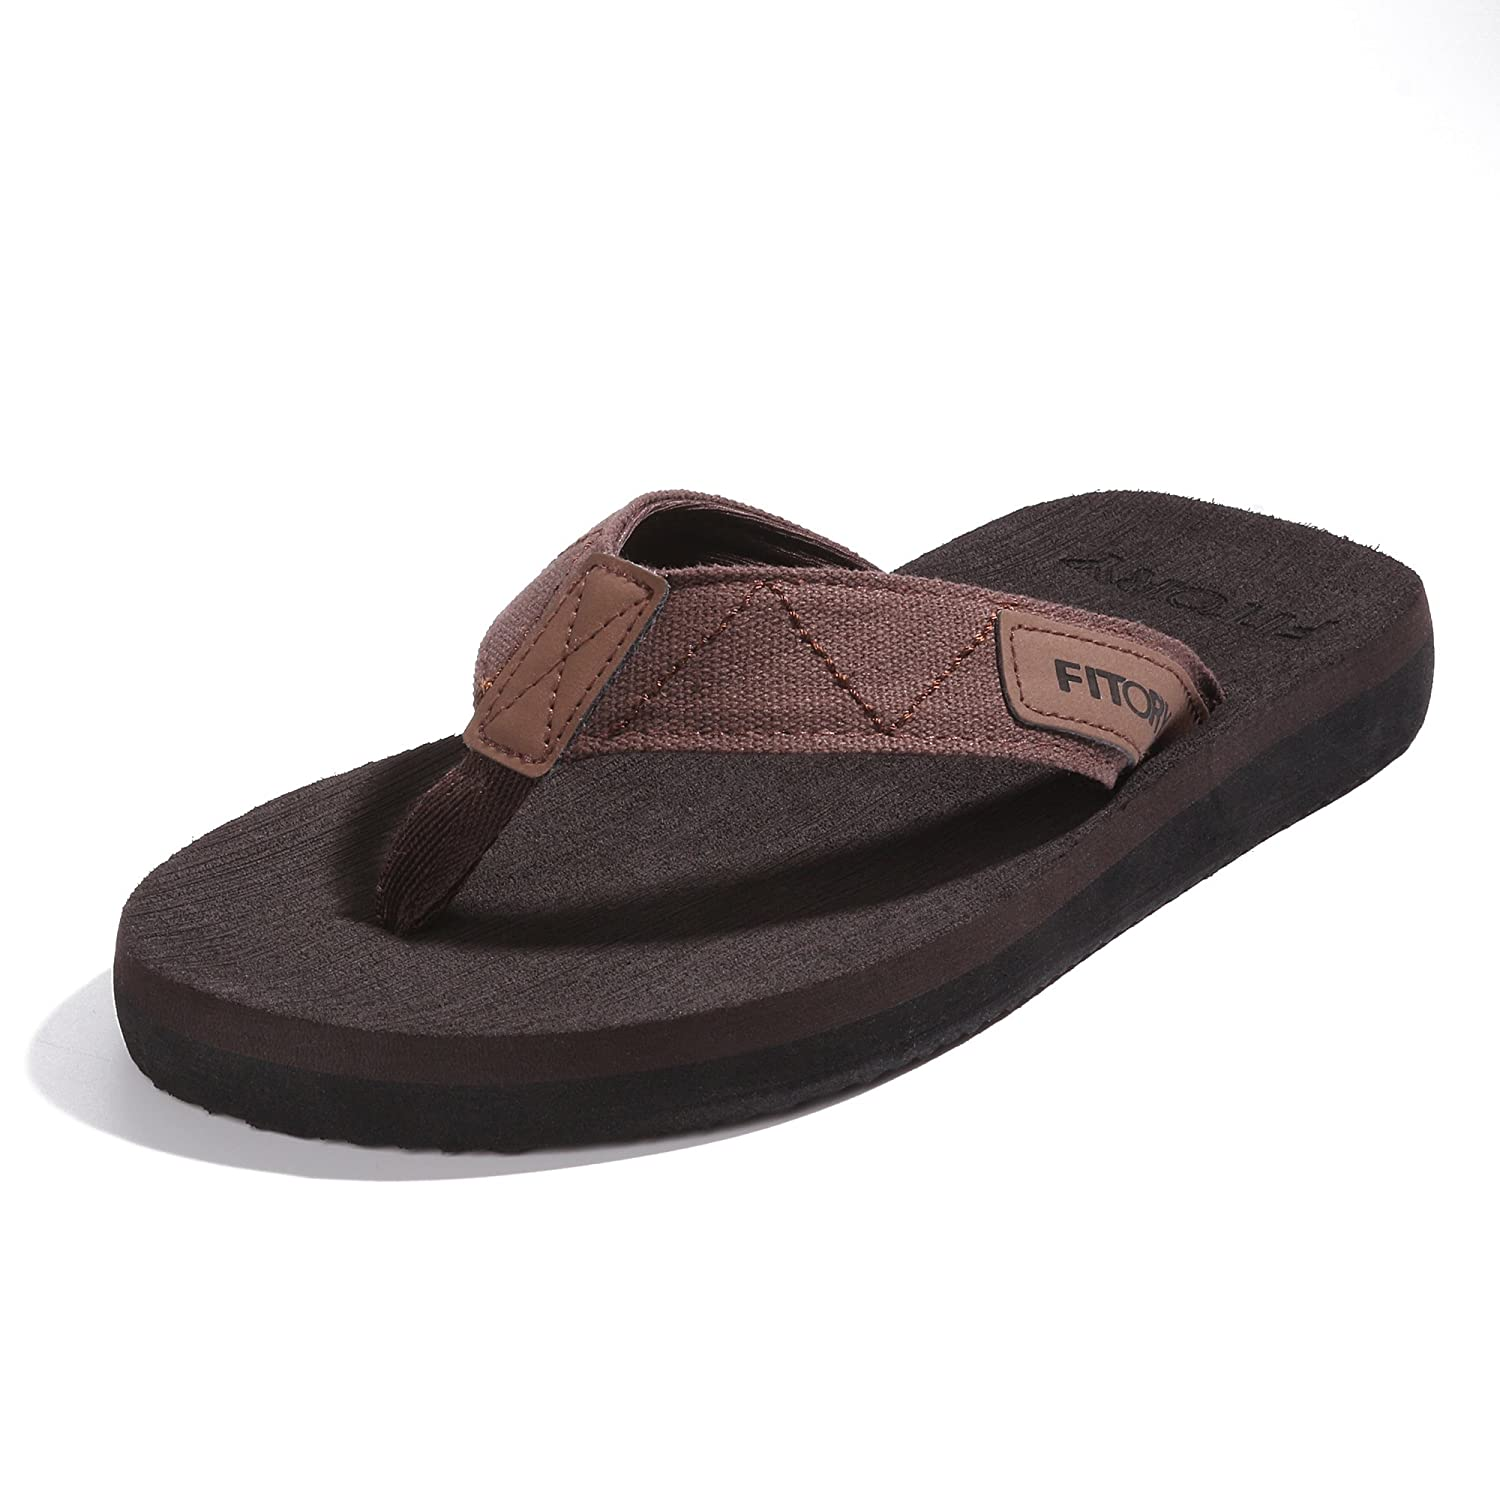 64fe3760627 FITORY Men s Flip-Flops Thongs Comfort Slippers for Beach Pool   Amazon.co.uk  Shoes   Bags